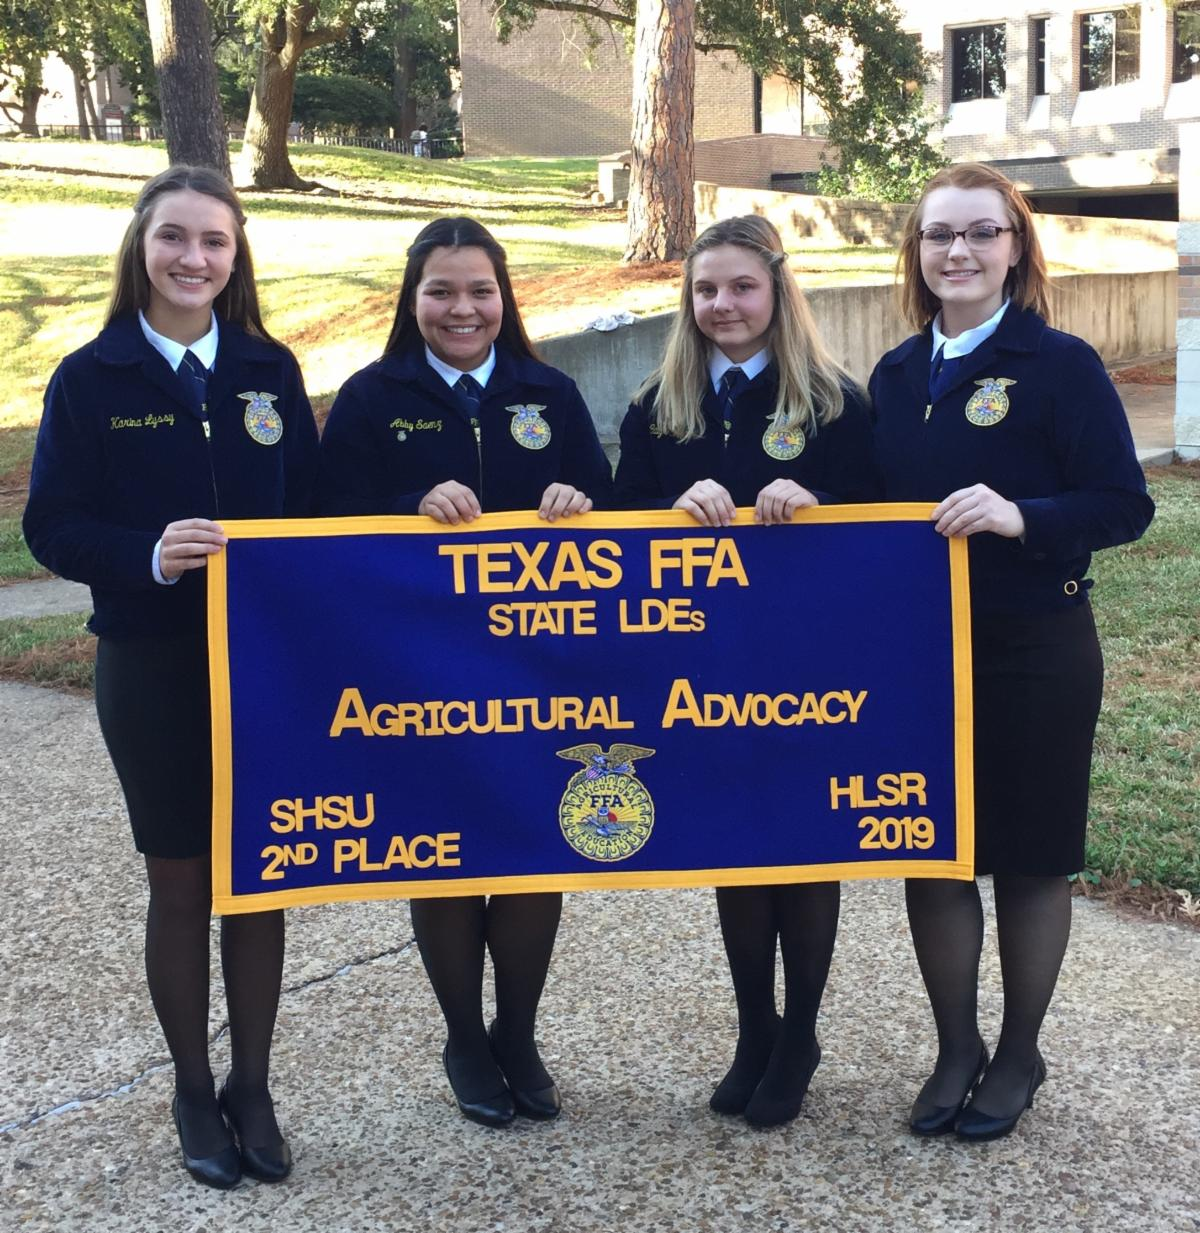 Ag Advocacy Team holding 2nd place banner